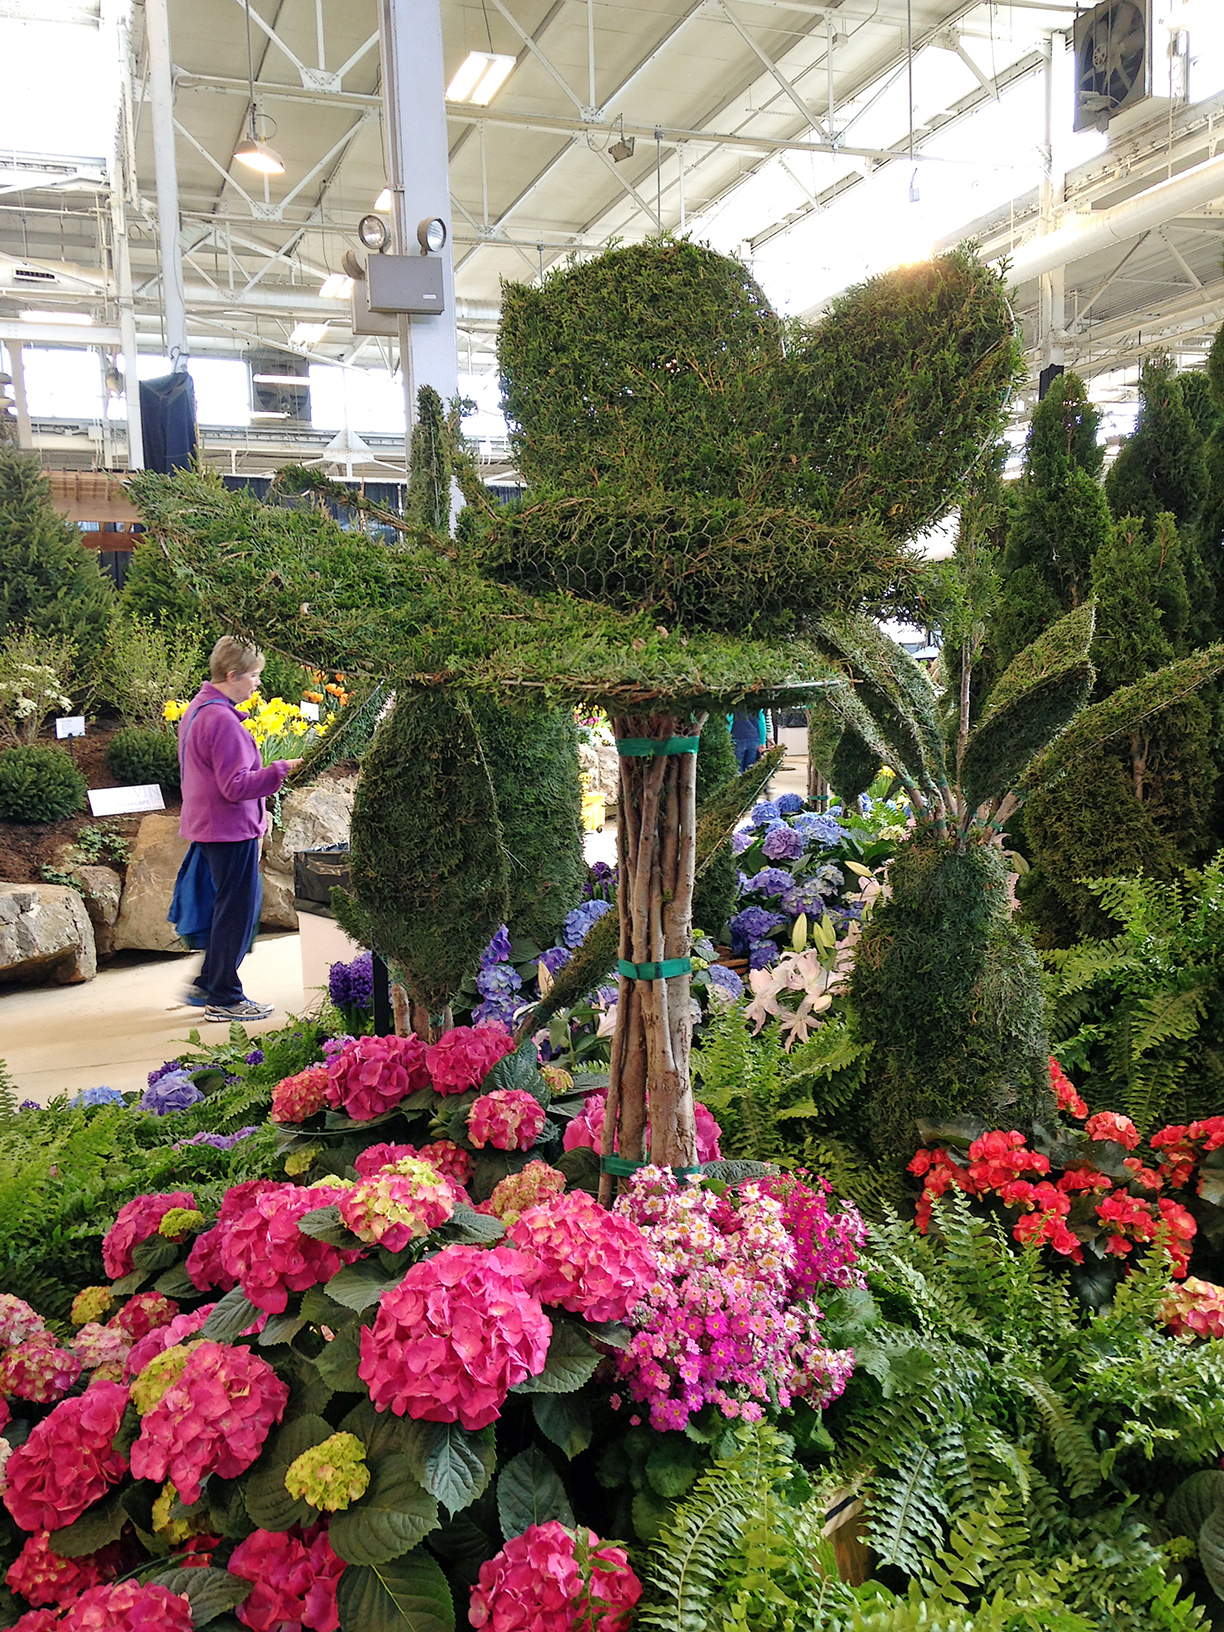 Indiana Flower and Patio Show 2015 Mini exhibit